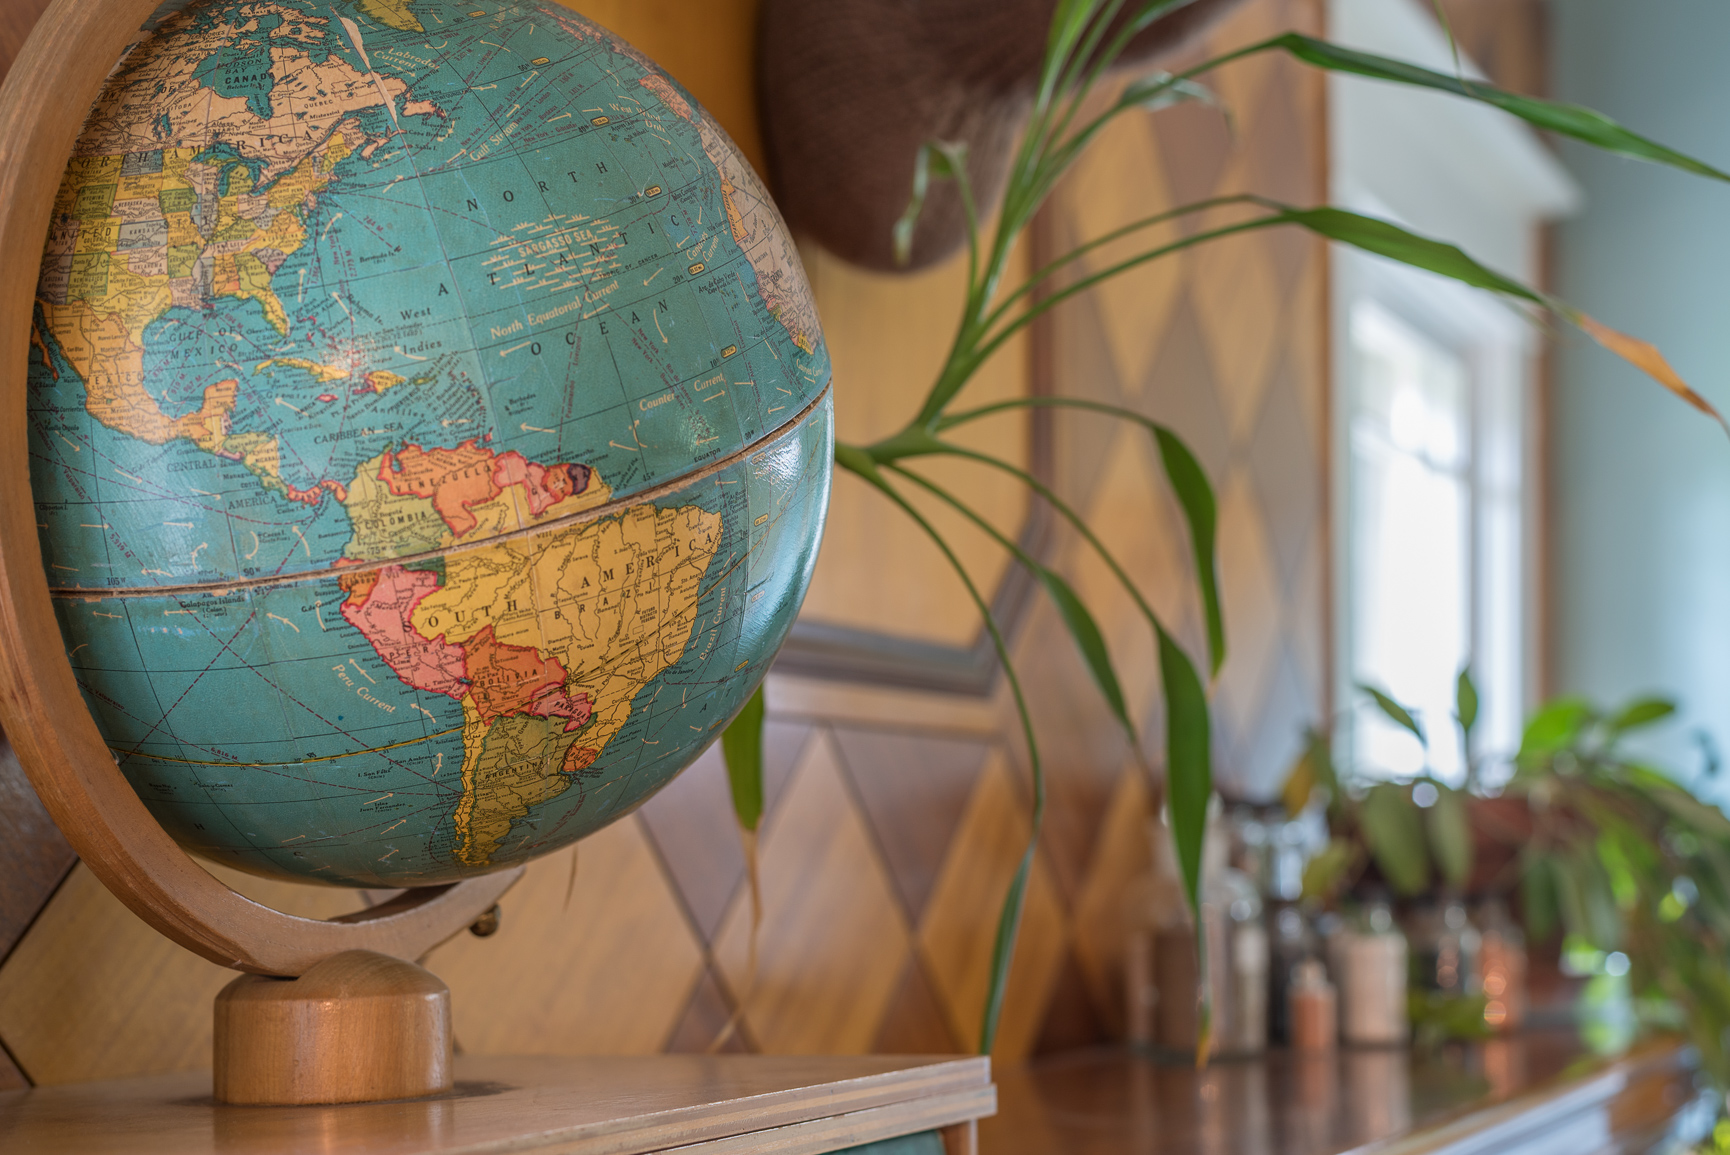 An old globe featuring South America is in the foreground with a stylish, two-toned paneled wall and plants artfully blurred in the background